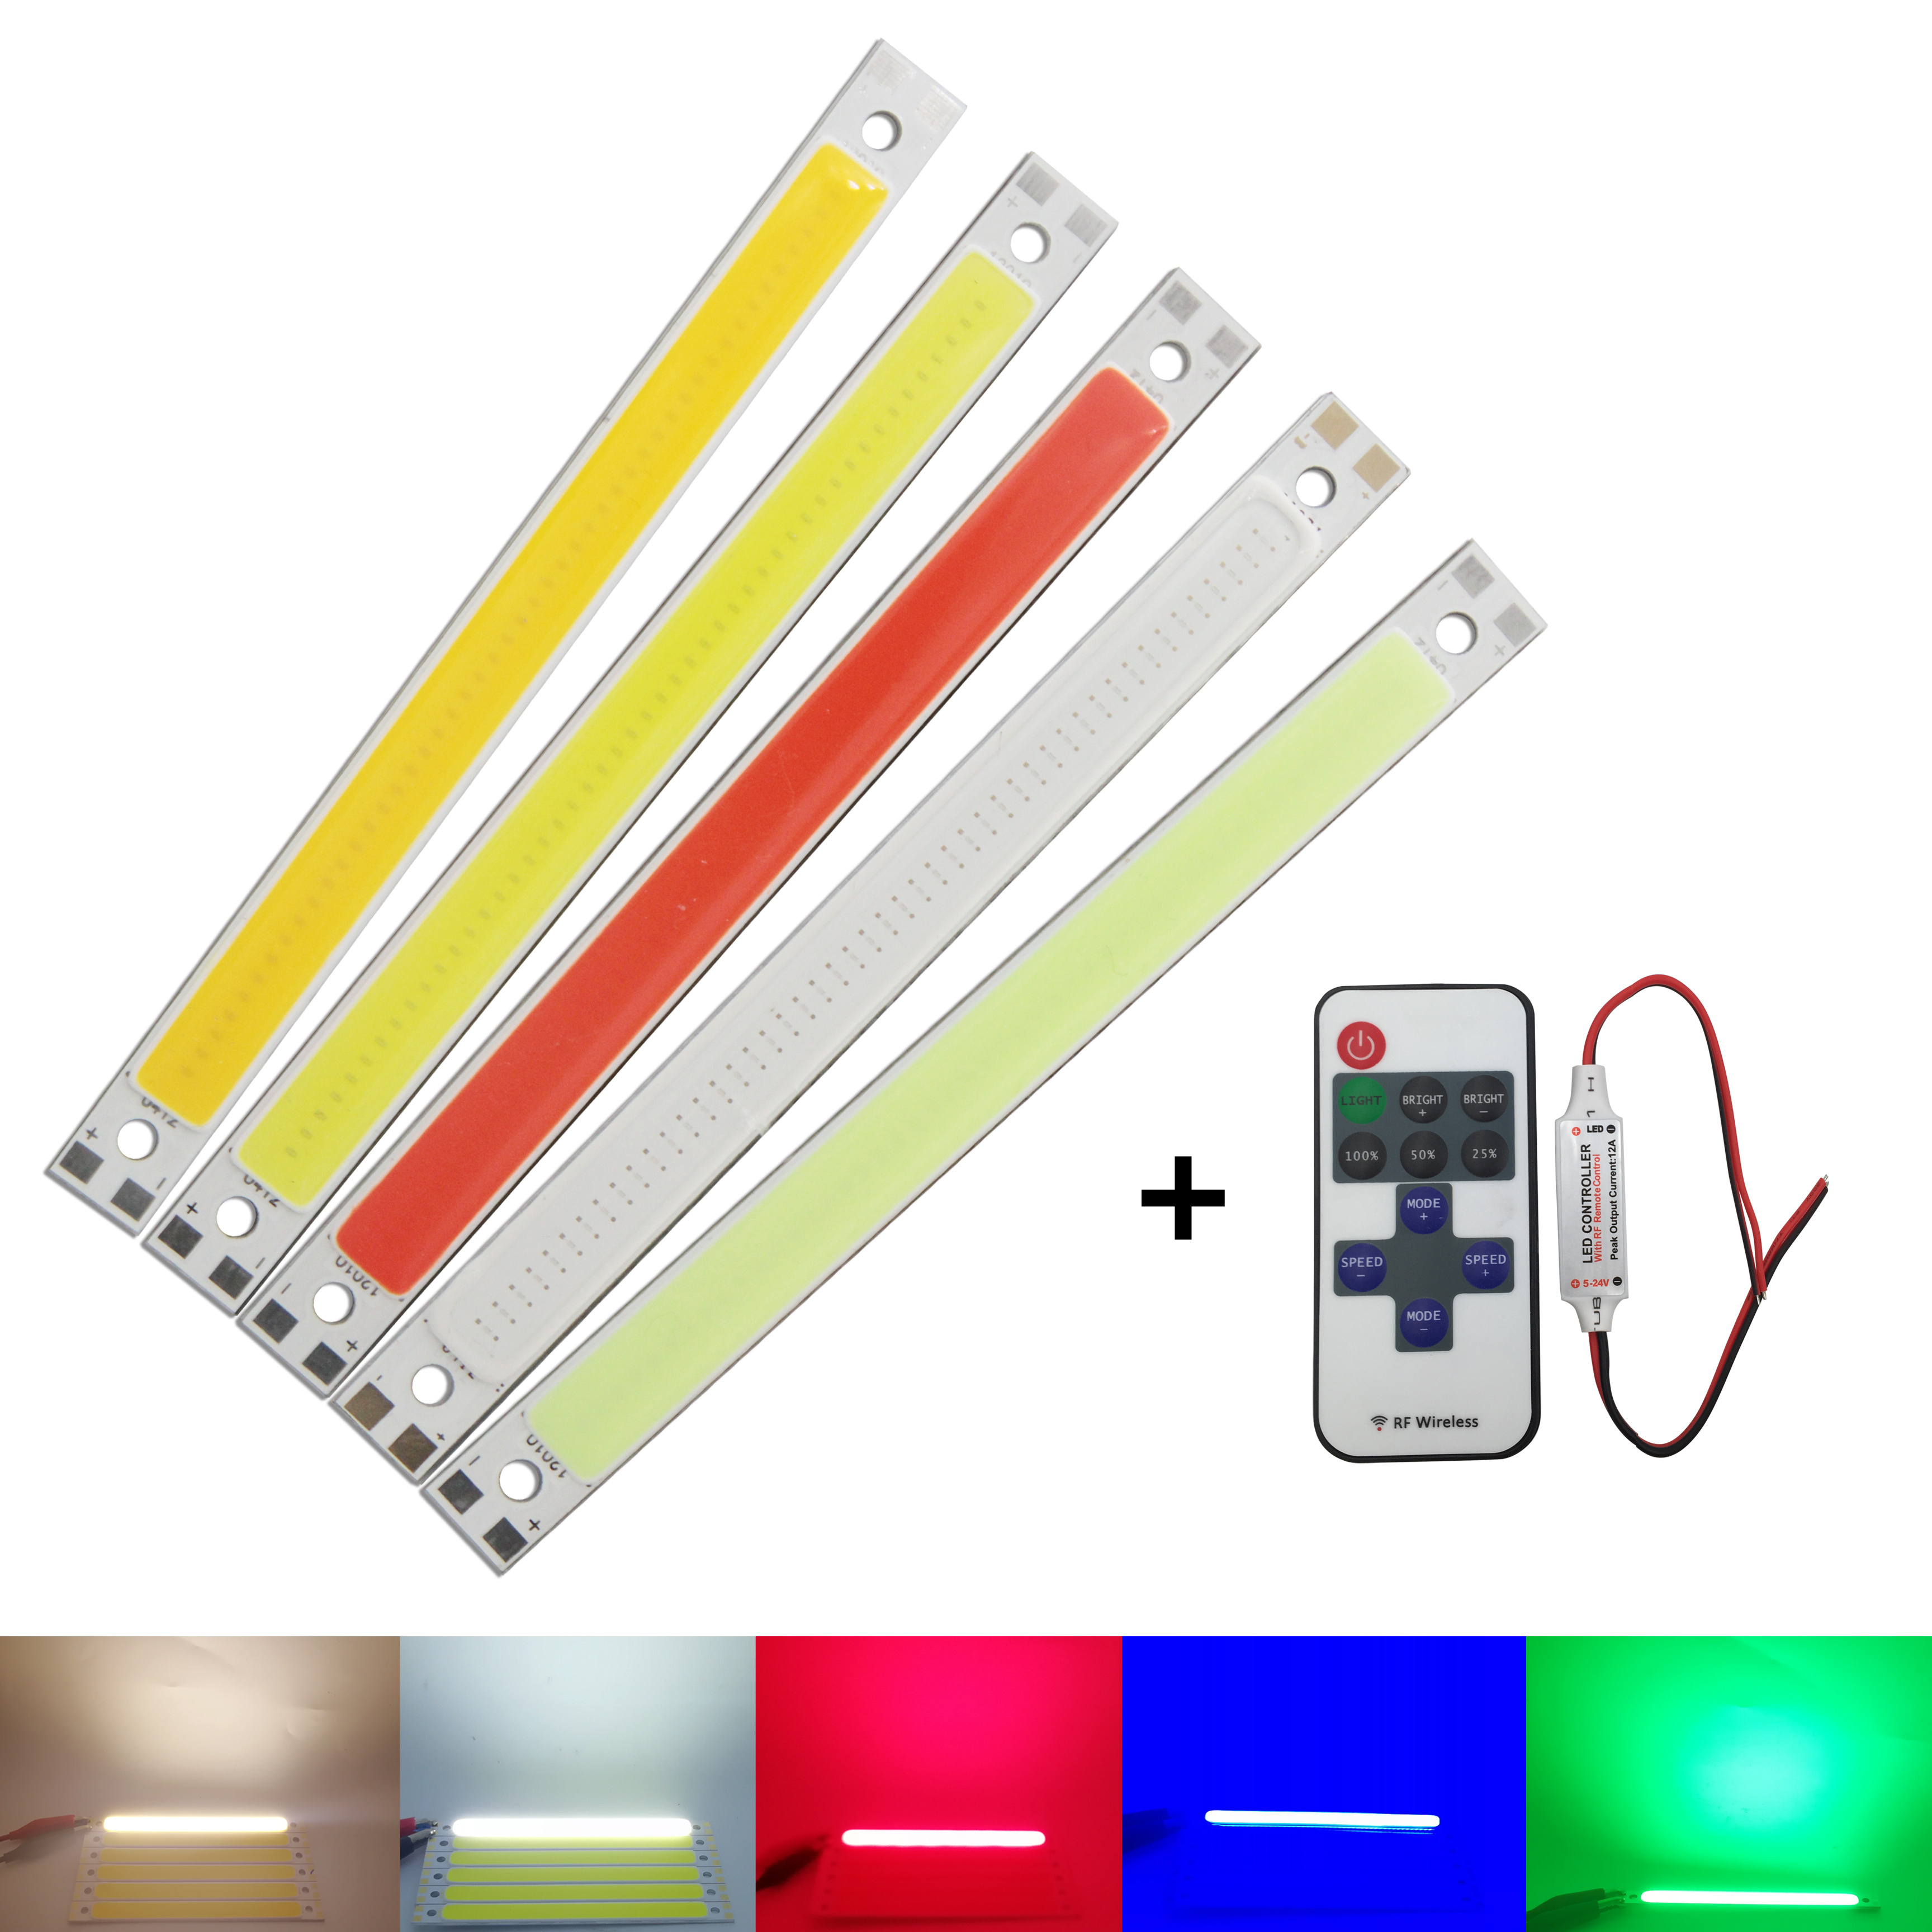 10W <font><b>12V</b></font> DC dimmable wiht RF remmote controller 120x10mm COB <font><b>LED</b></font> light source Warm White Blue Red Green for DIY auto strip lamp image